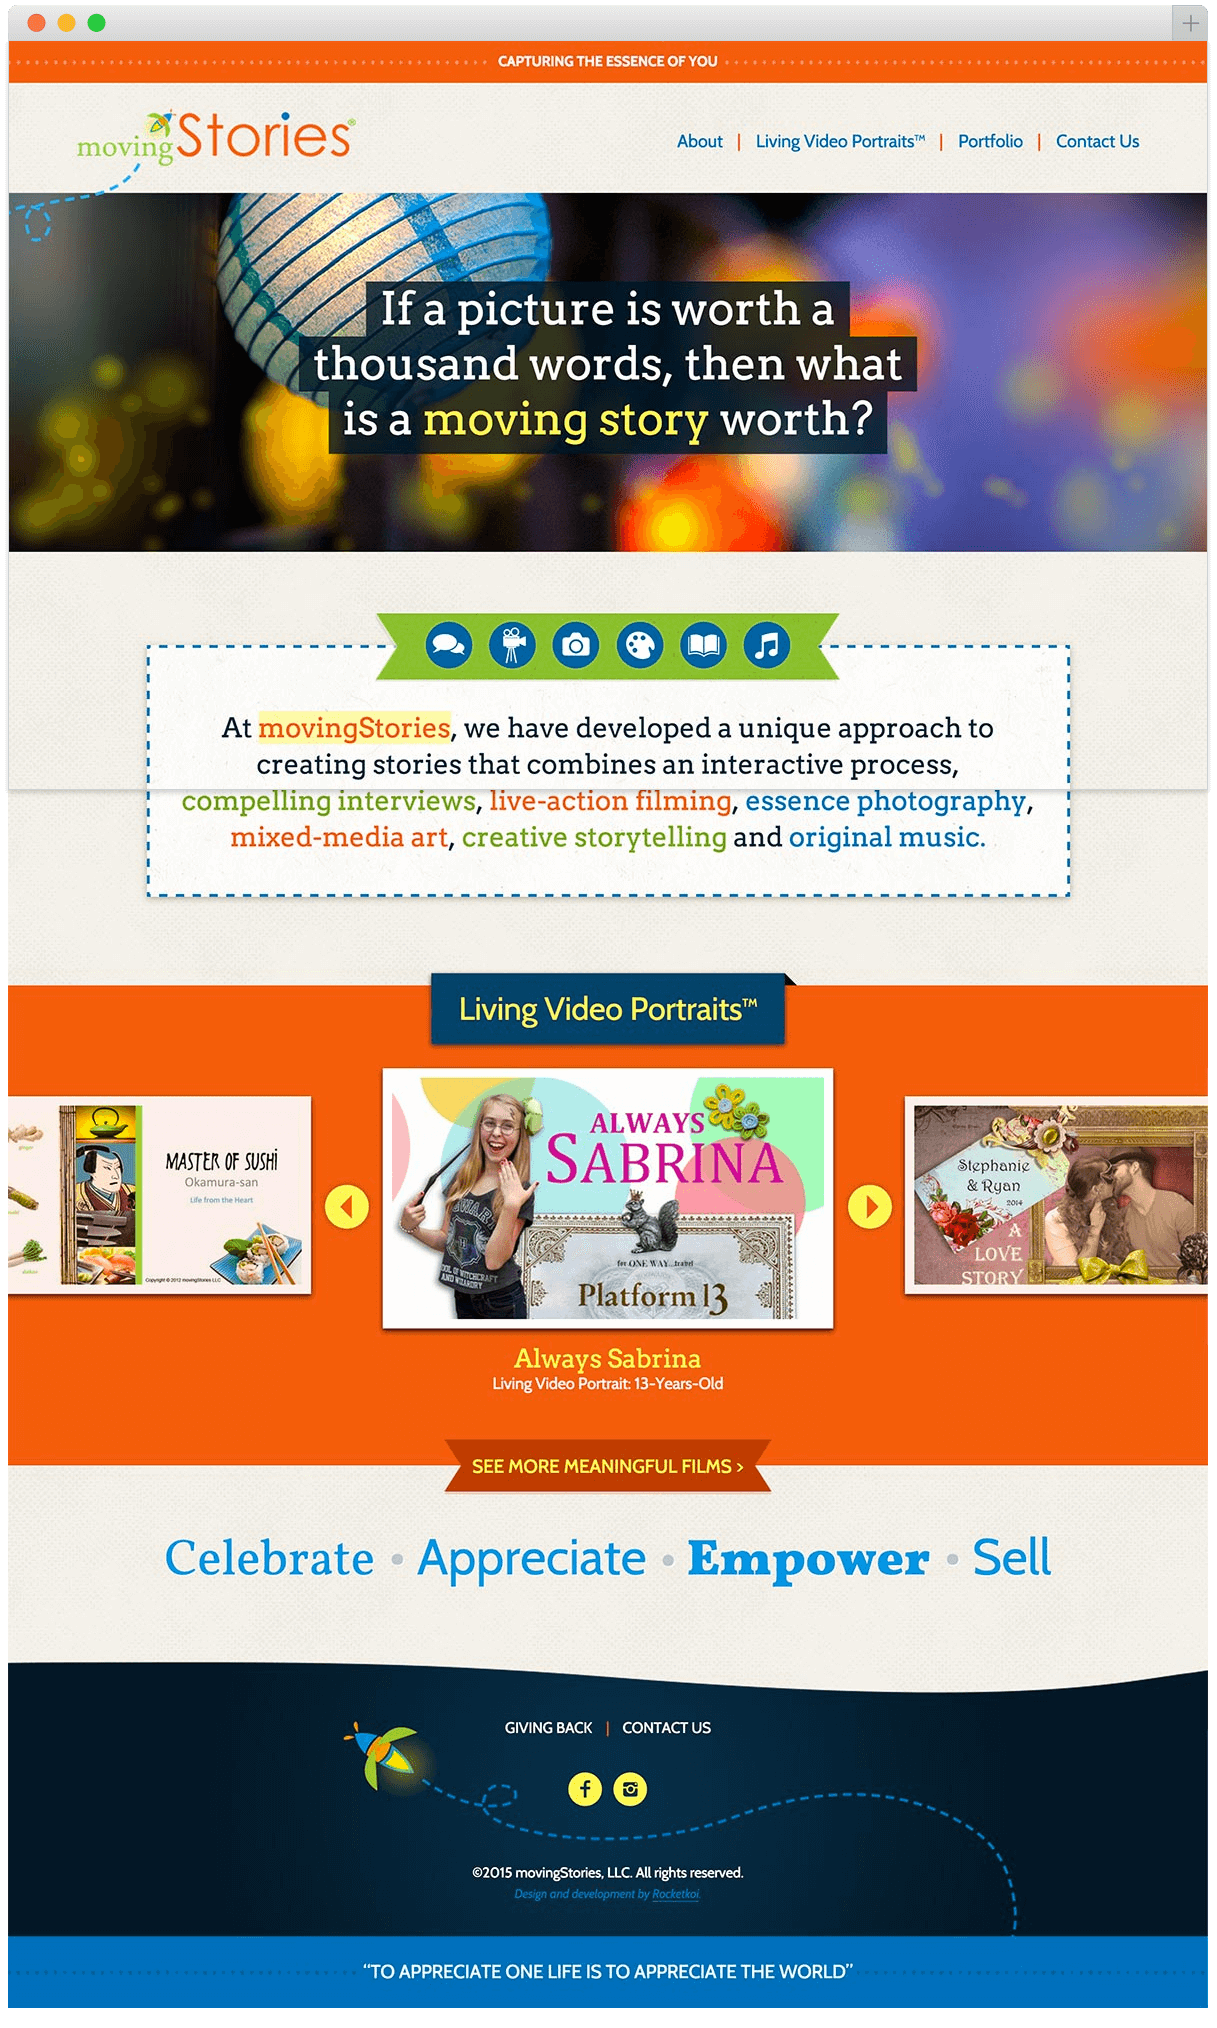 movingstories.biz homepage